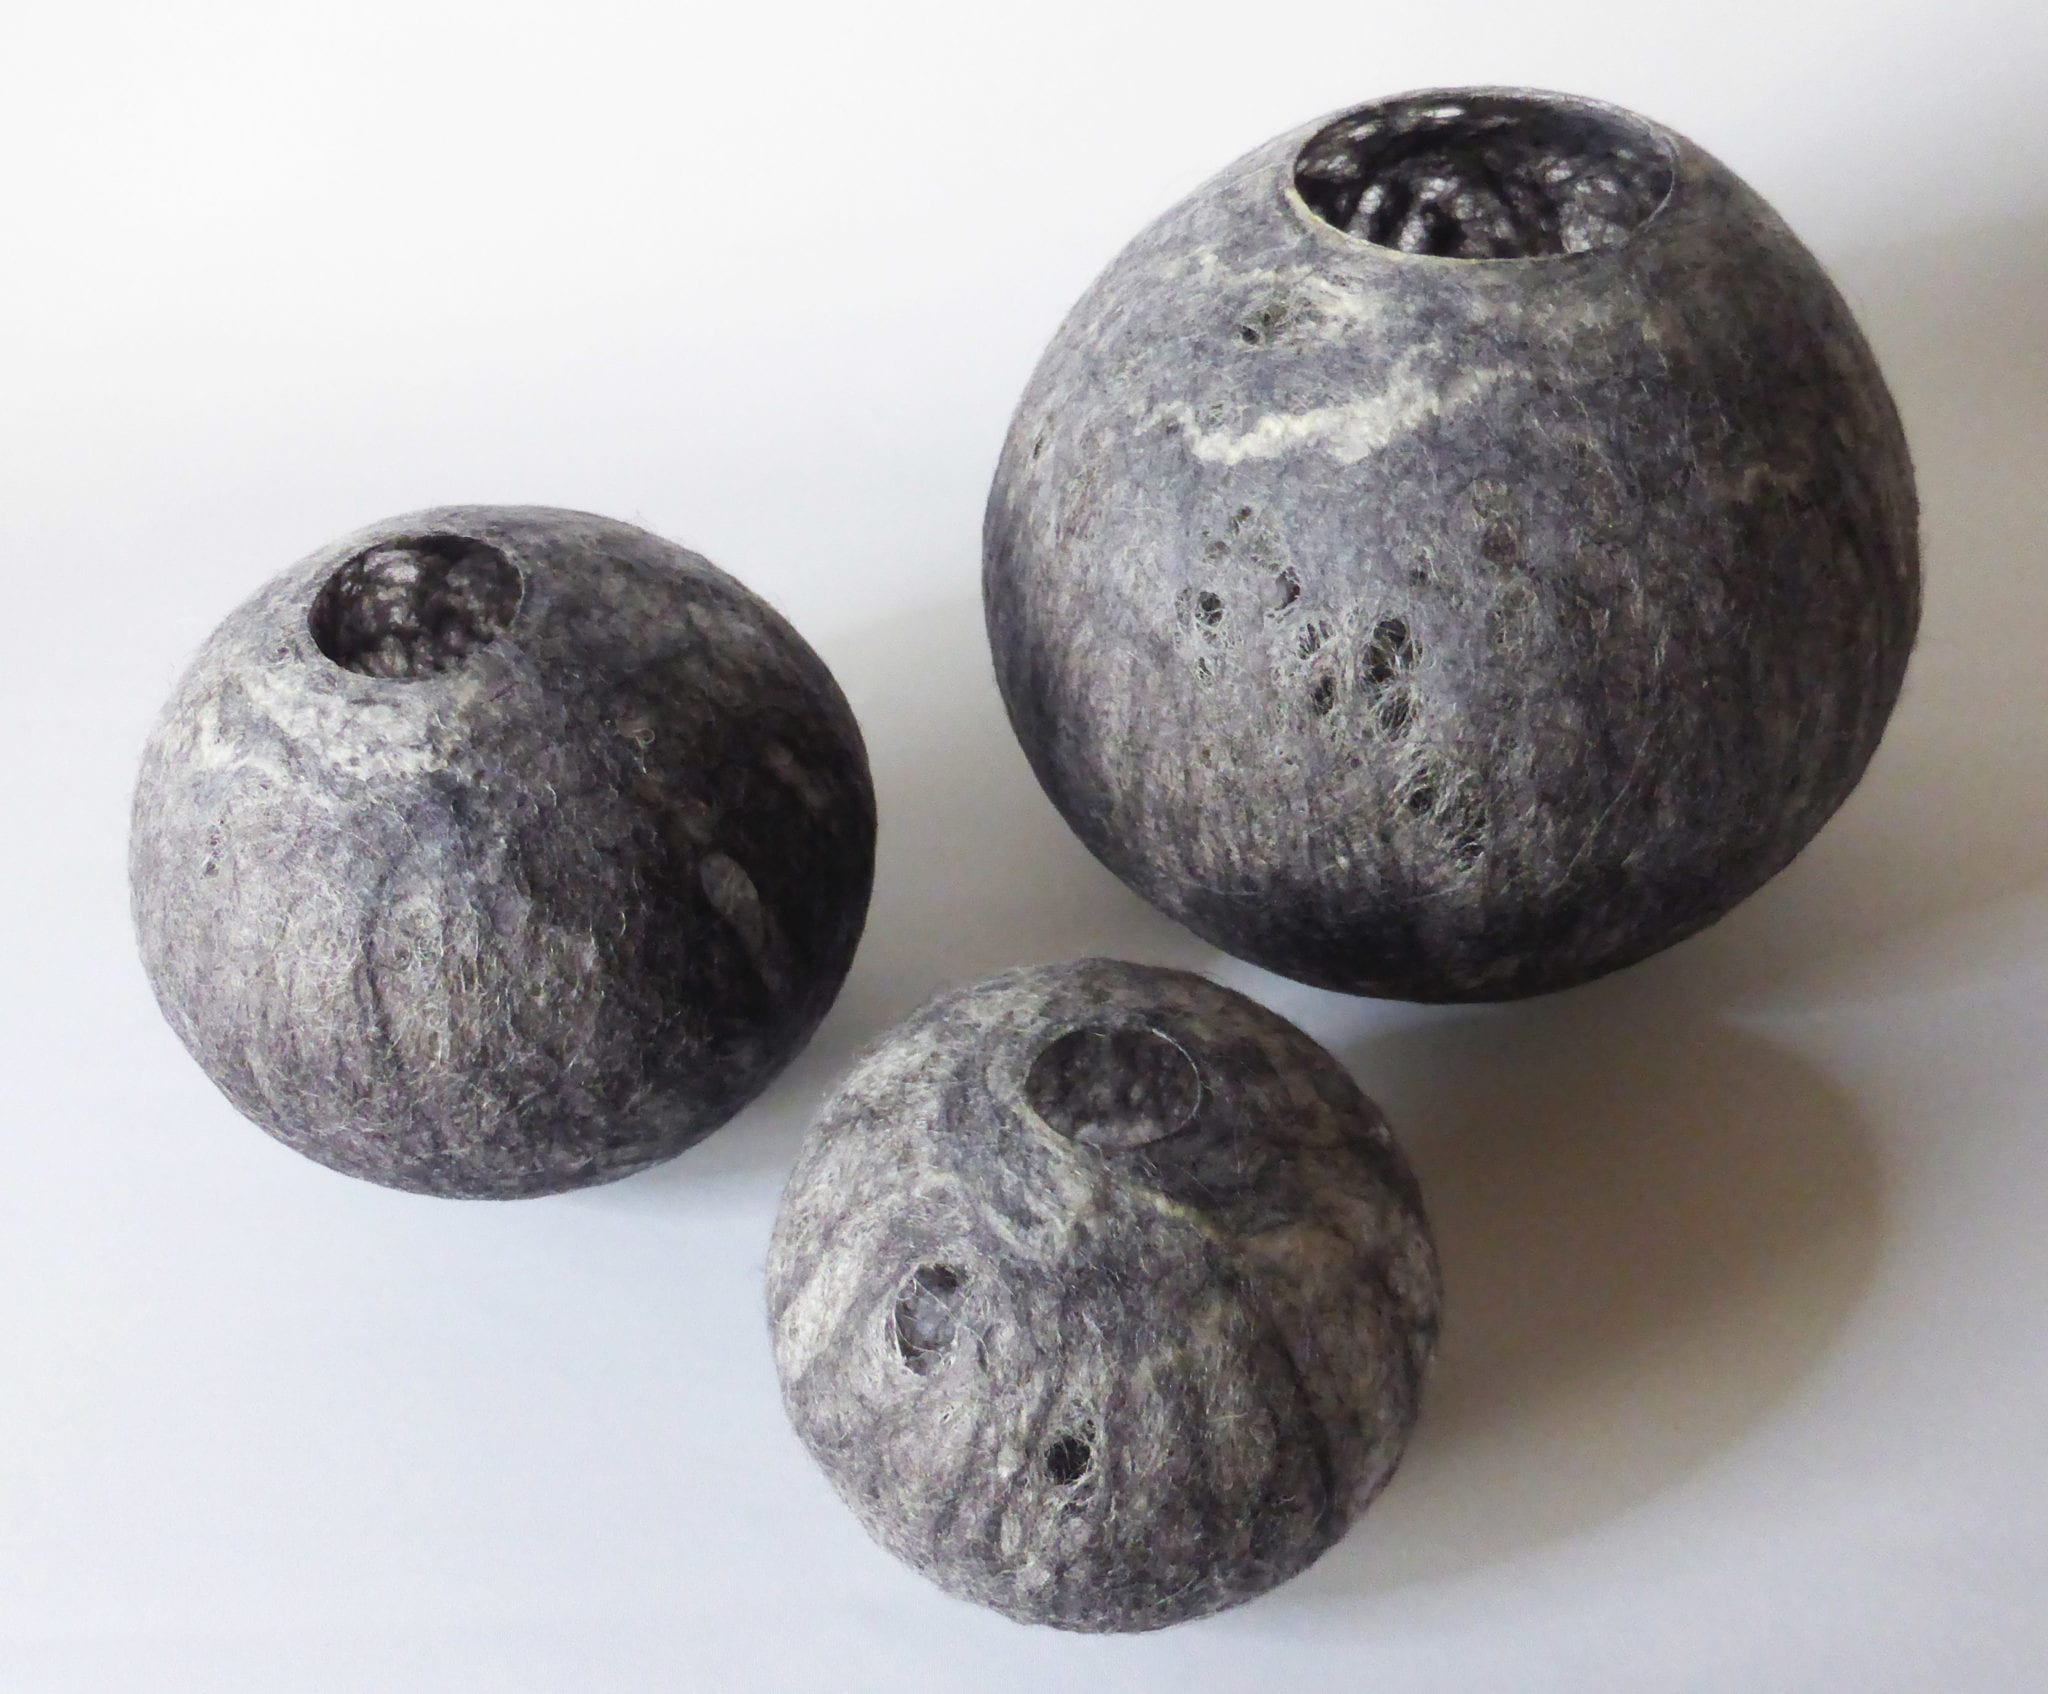 Andrea McCallum, Shades of Grey Vessels, 2018, Merino & Icelandic wool, silk fibre, glue, wet felted & stiffened, Set of 3, various sizes, courtesy of the artist